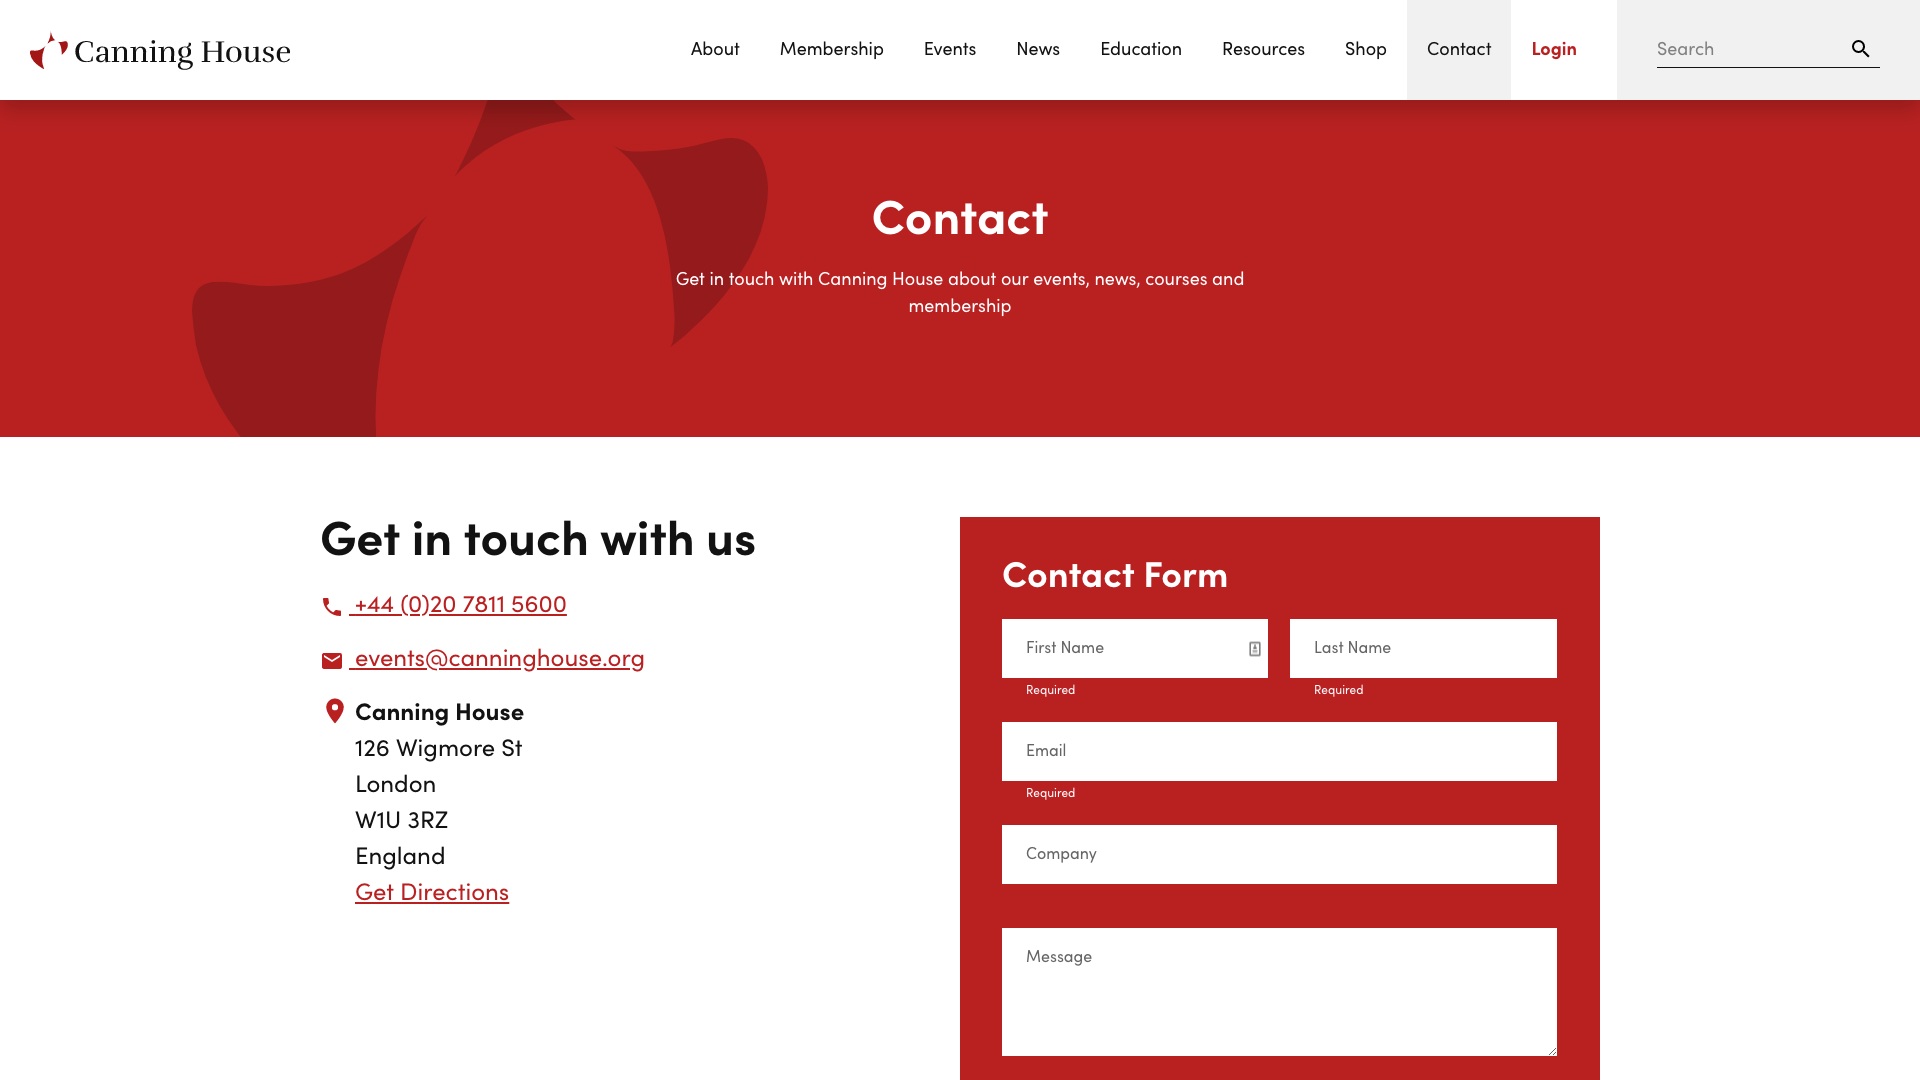 Canning House Contact Page Design